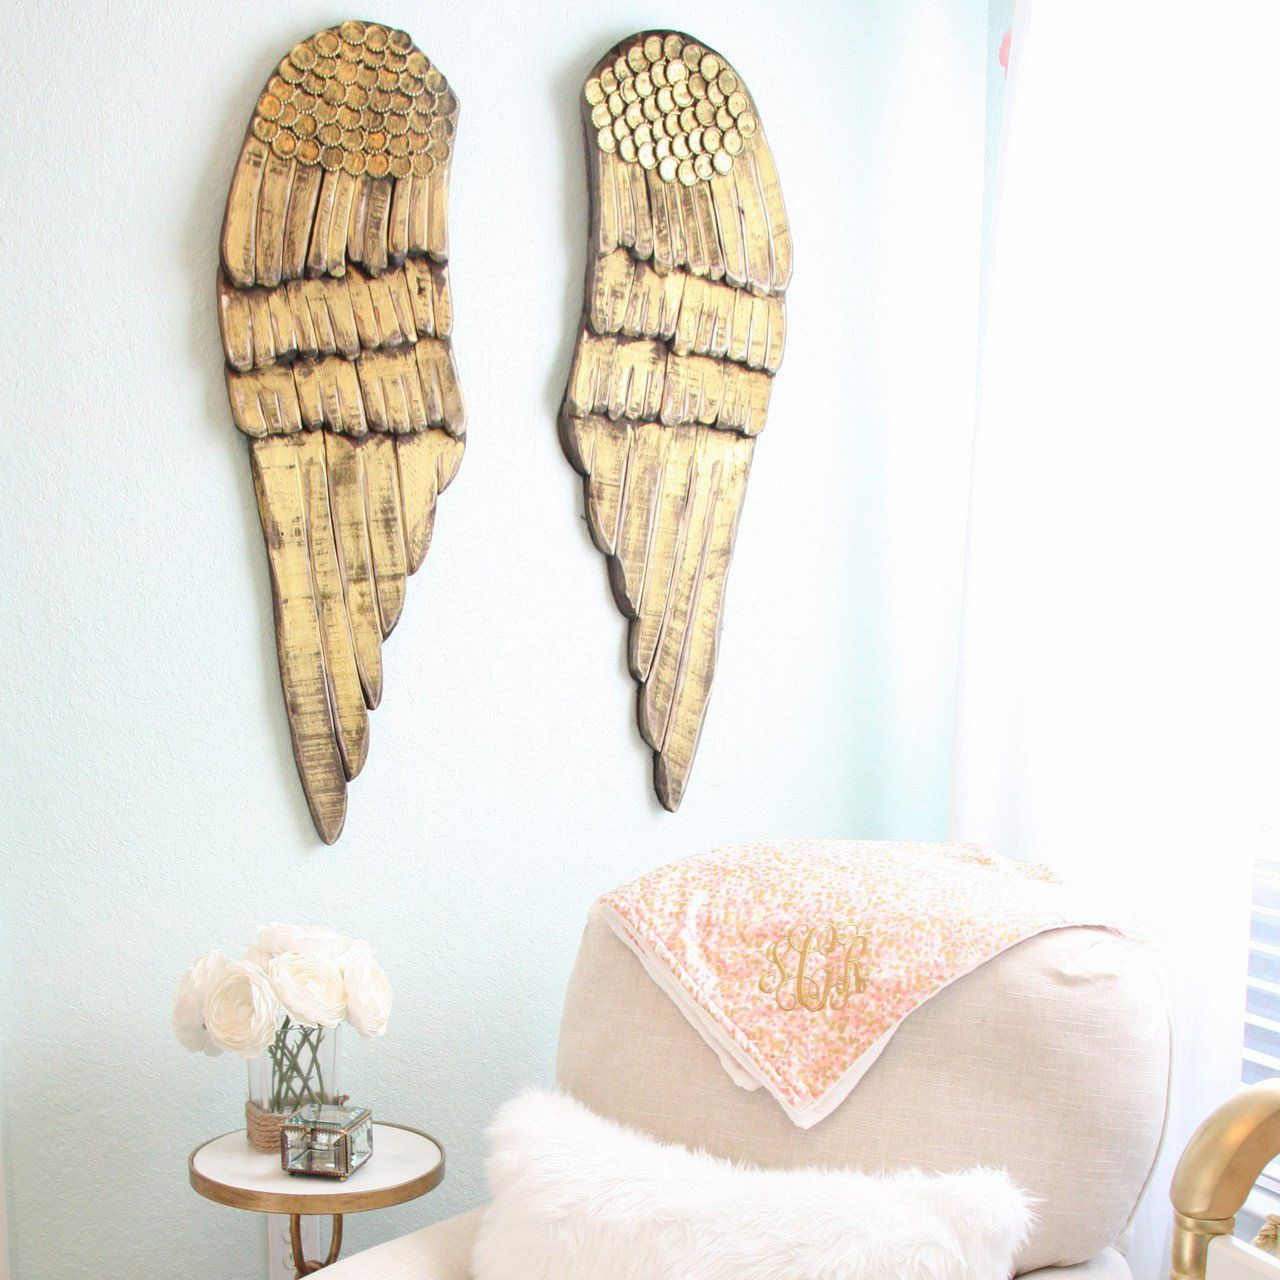 ANGEL ROOM ITEMS